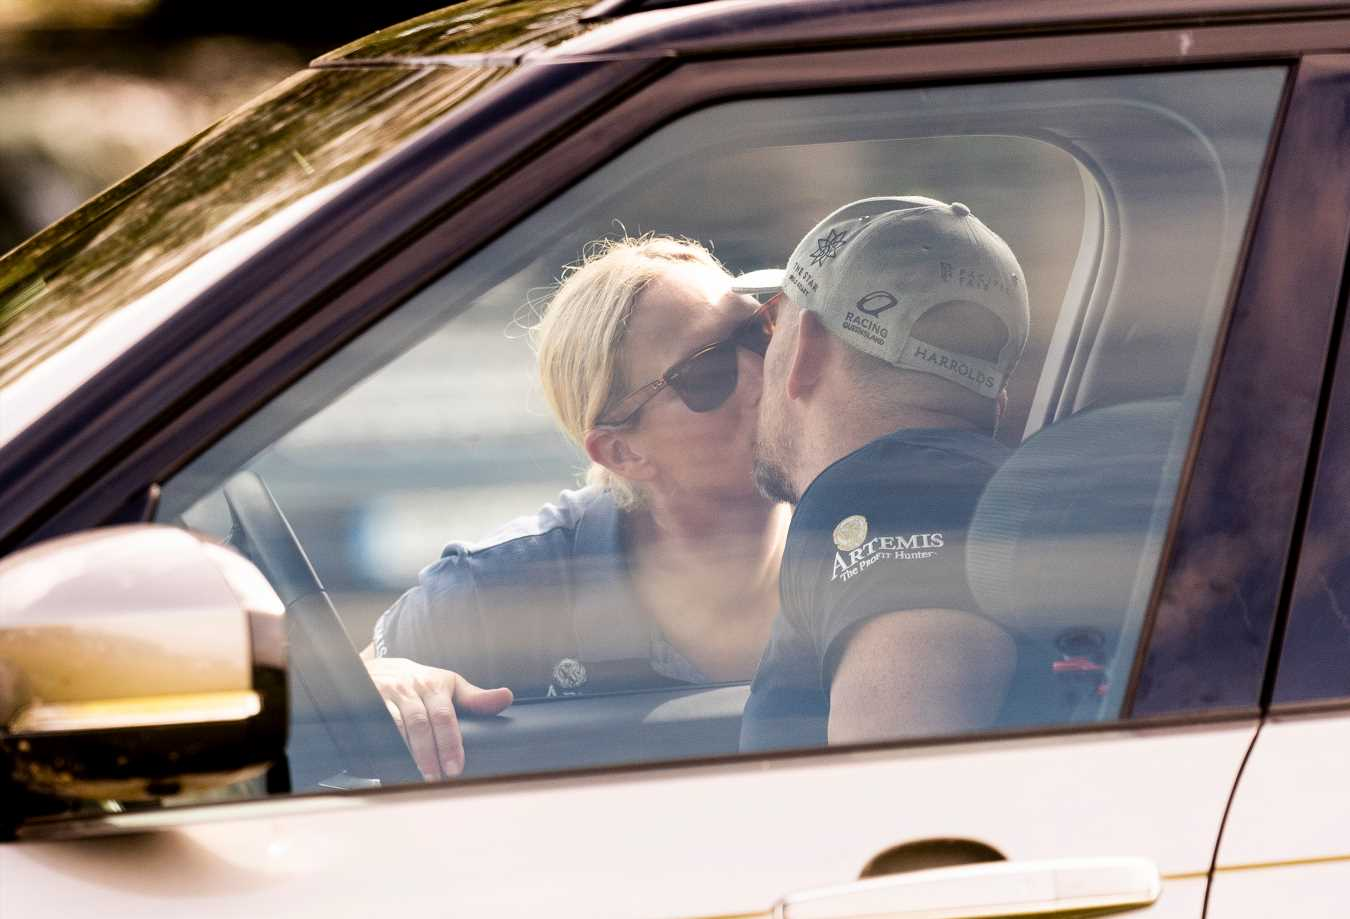 Queen's Granddaughter Zara Tindall Gets a Good Luck Kiss from Husband Mike at Horse Riding Event